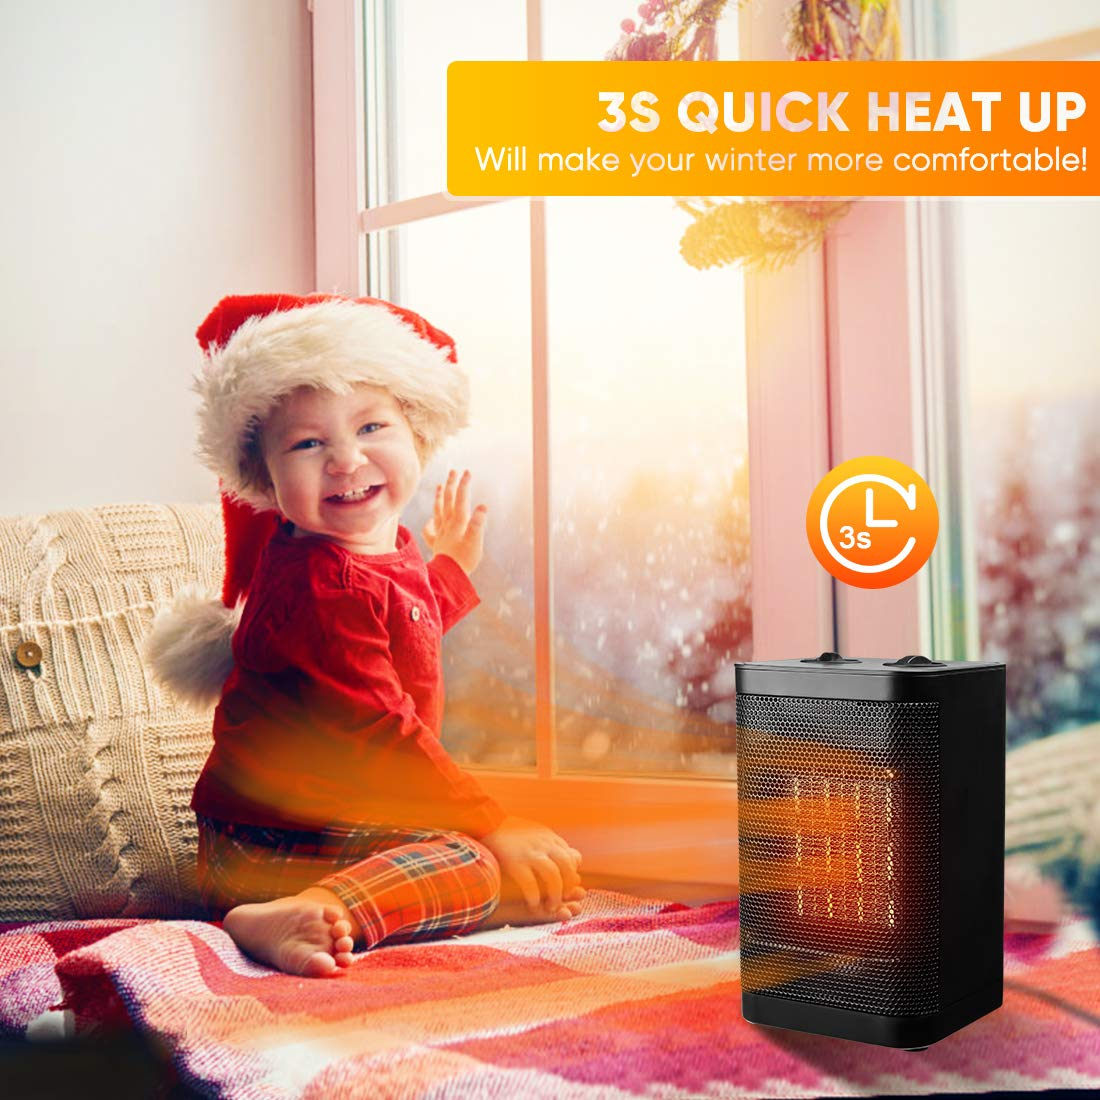 Space Heater Indoor Electric Heater - Portable Ceramic Personal Quiet Small Heater For Office, Home, Bedroom, Kids Room with Thermostat Tip-over & Overheat Auto-Off